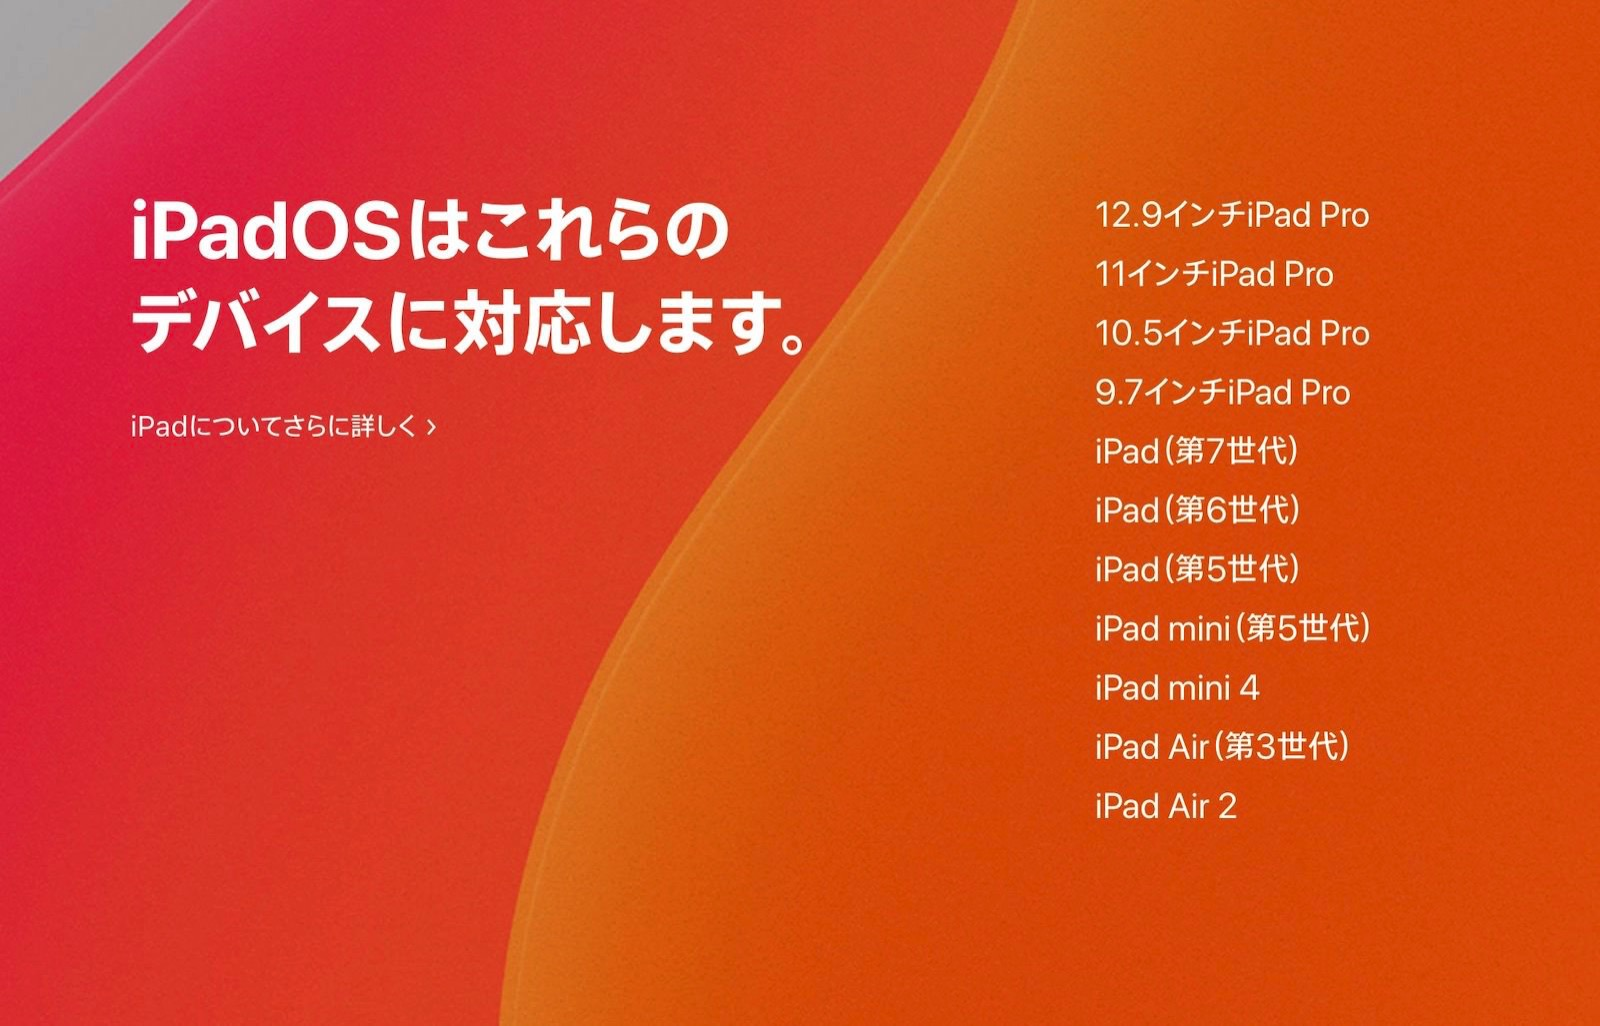 ipados13-supprted-devices.jpg